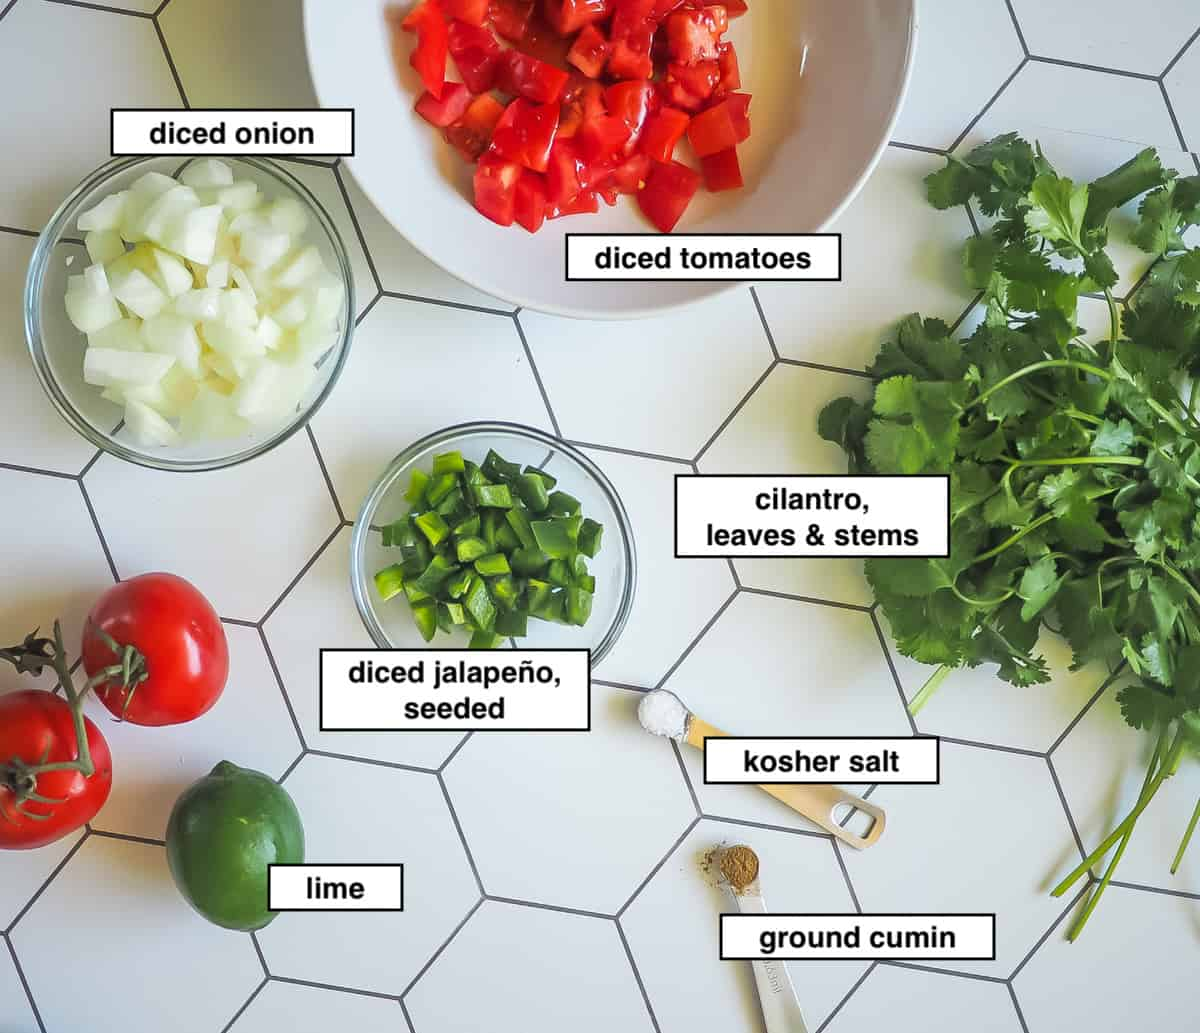 A picture of the ingredients in homemade salsa on a tiled background, labeled.